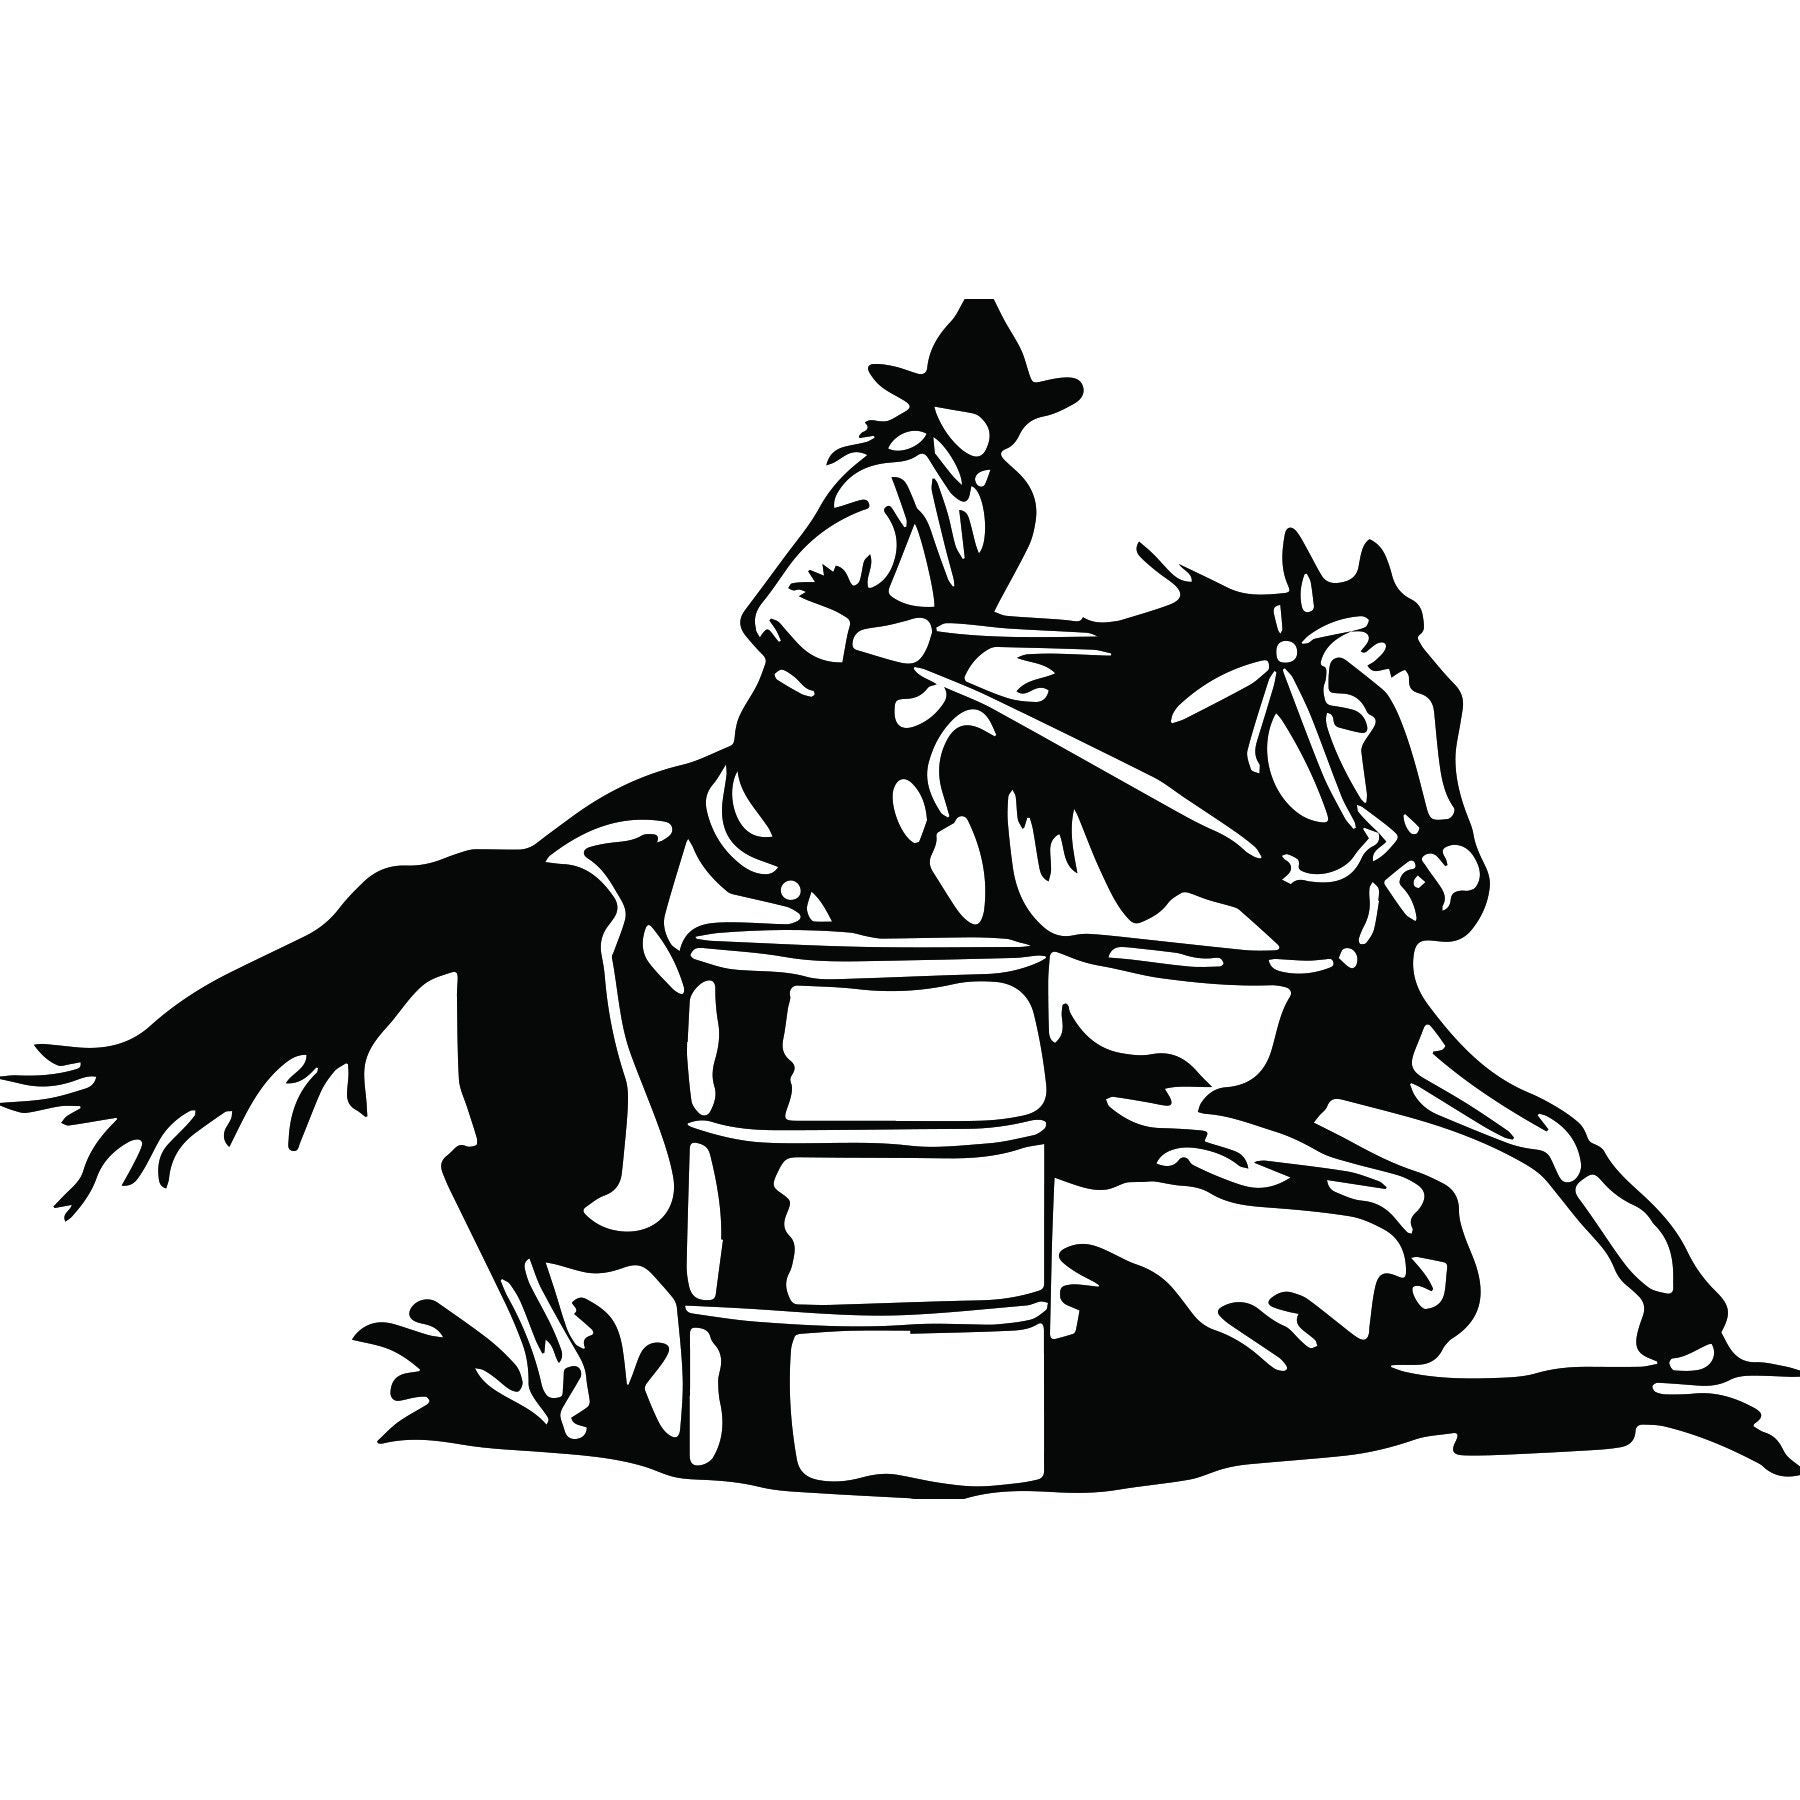 Rodeo Team Roping Silhouette Decal 8n X 3 Rodeo Pic T